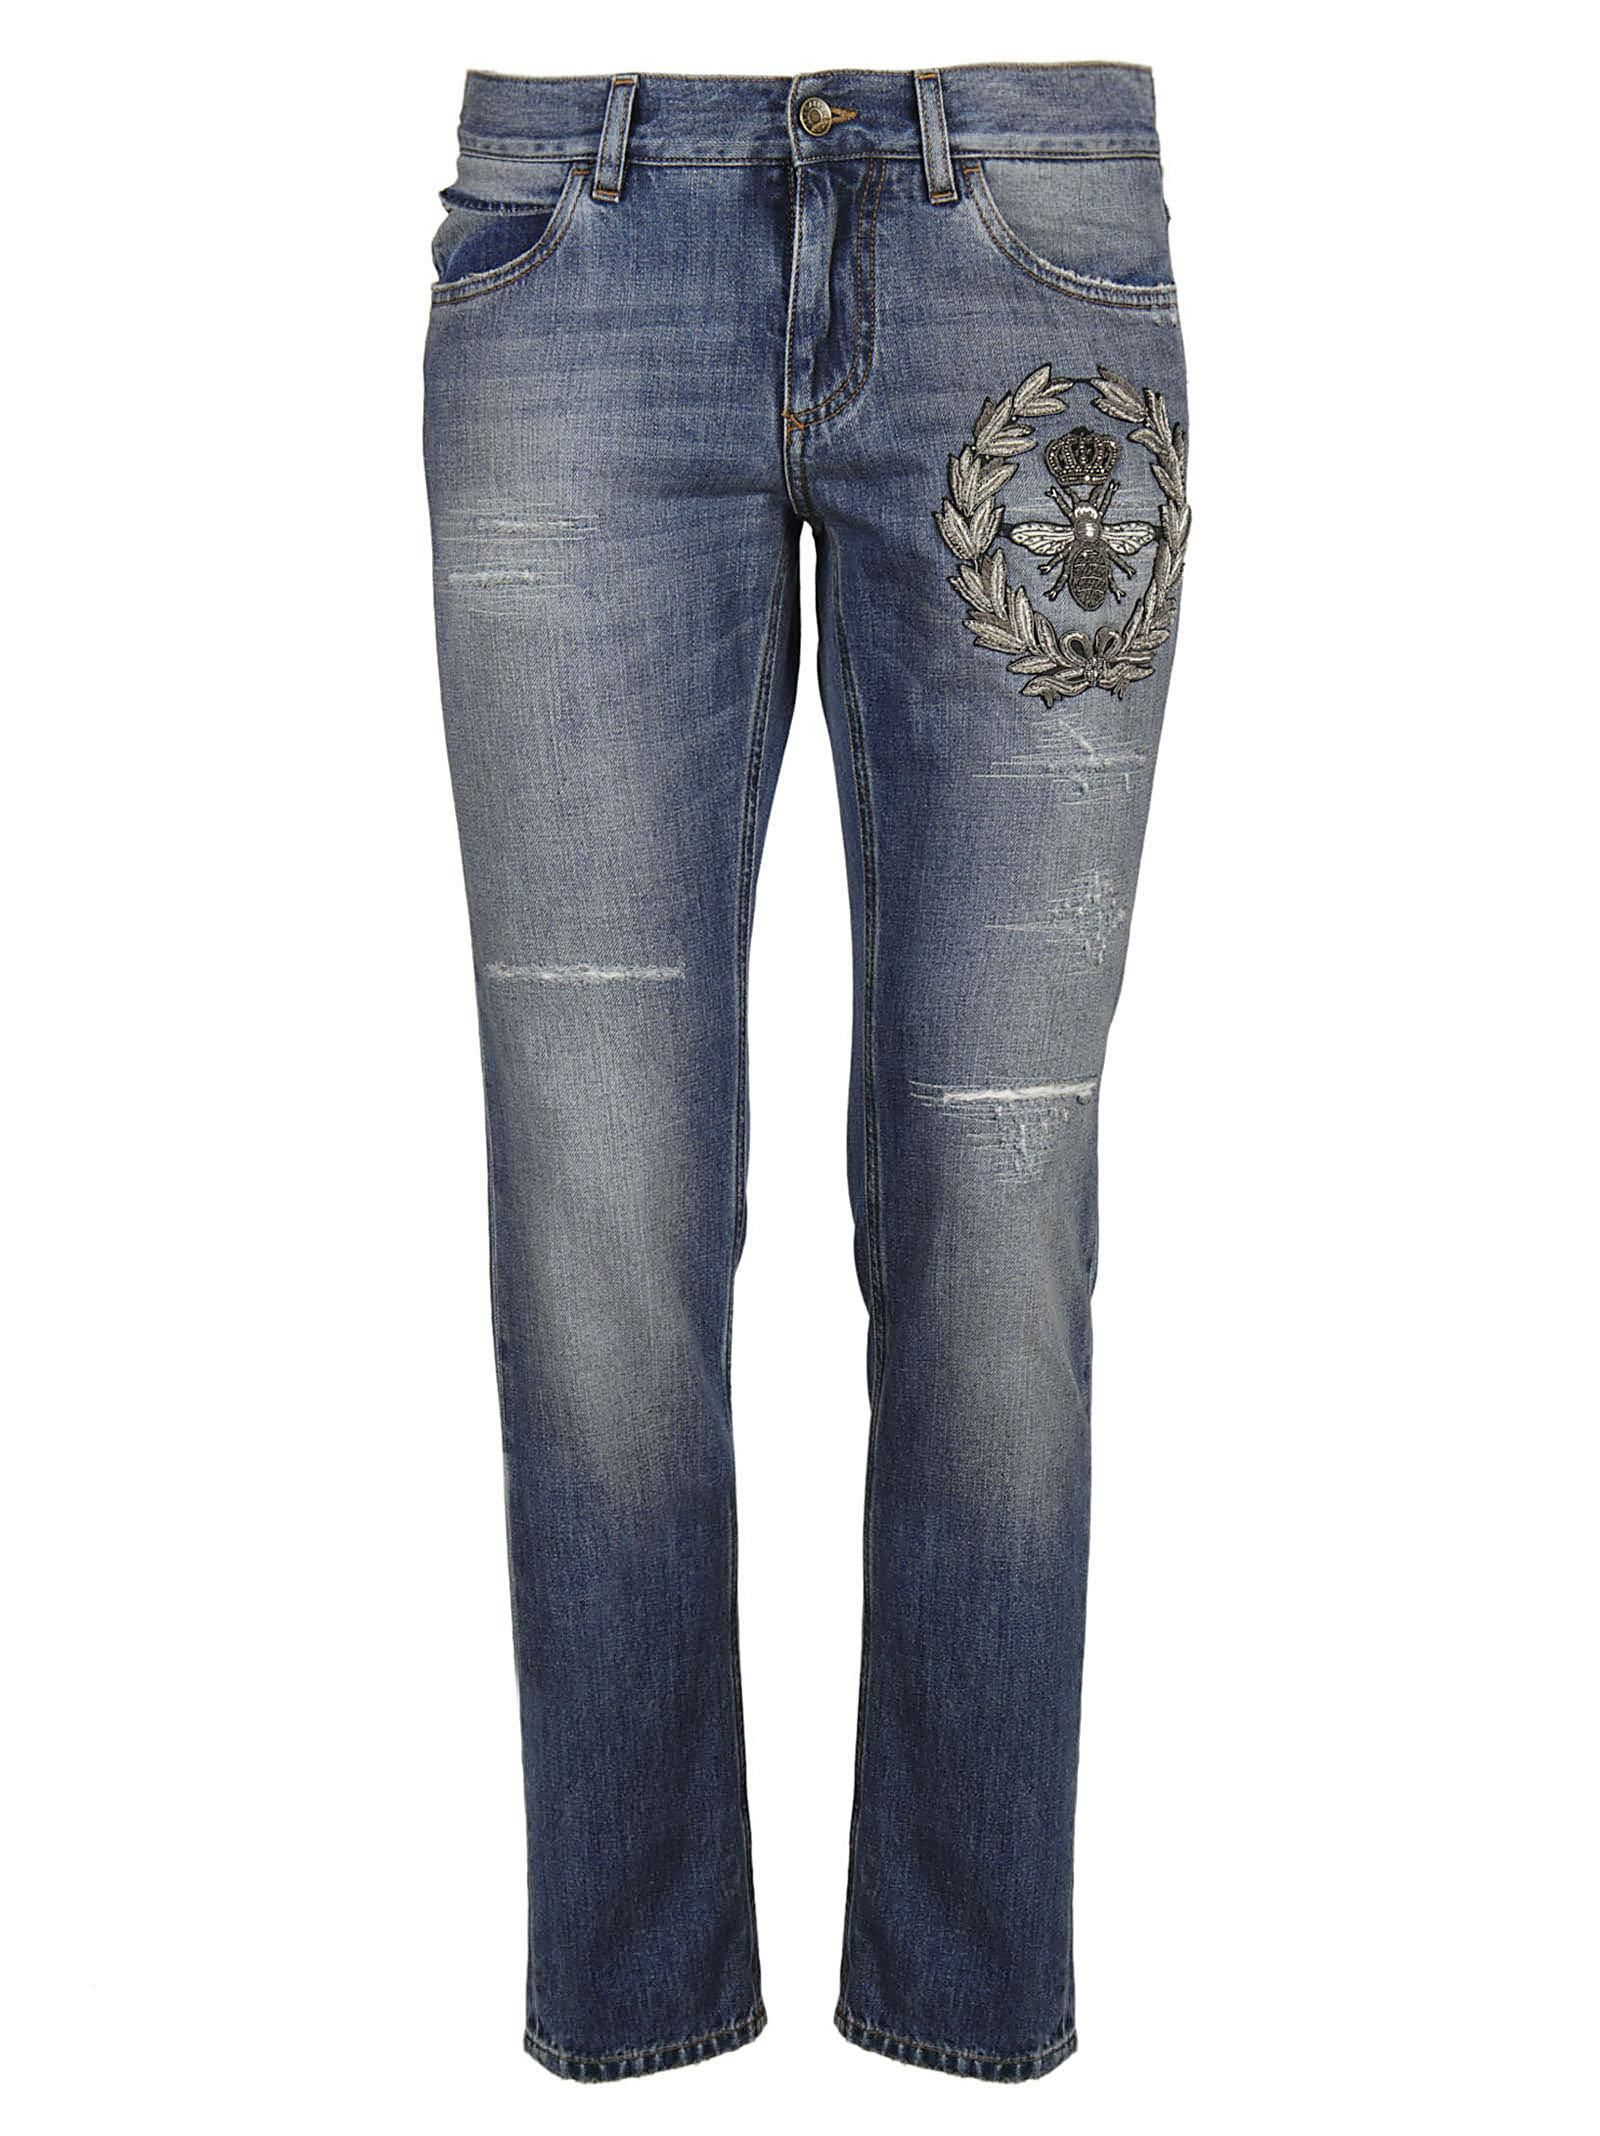 Dolce & Gabbana Crowned Bee Embroidered Jeans